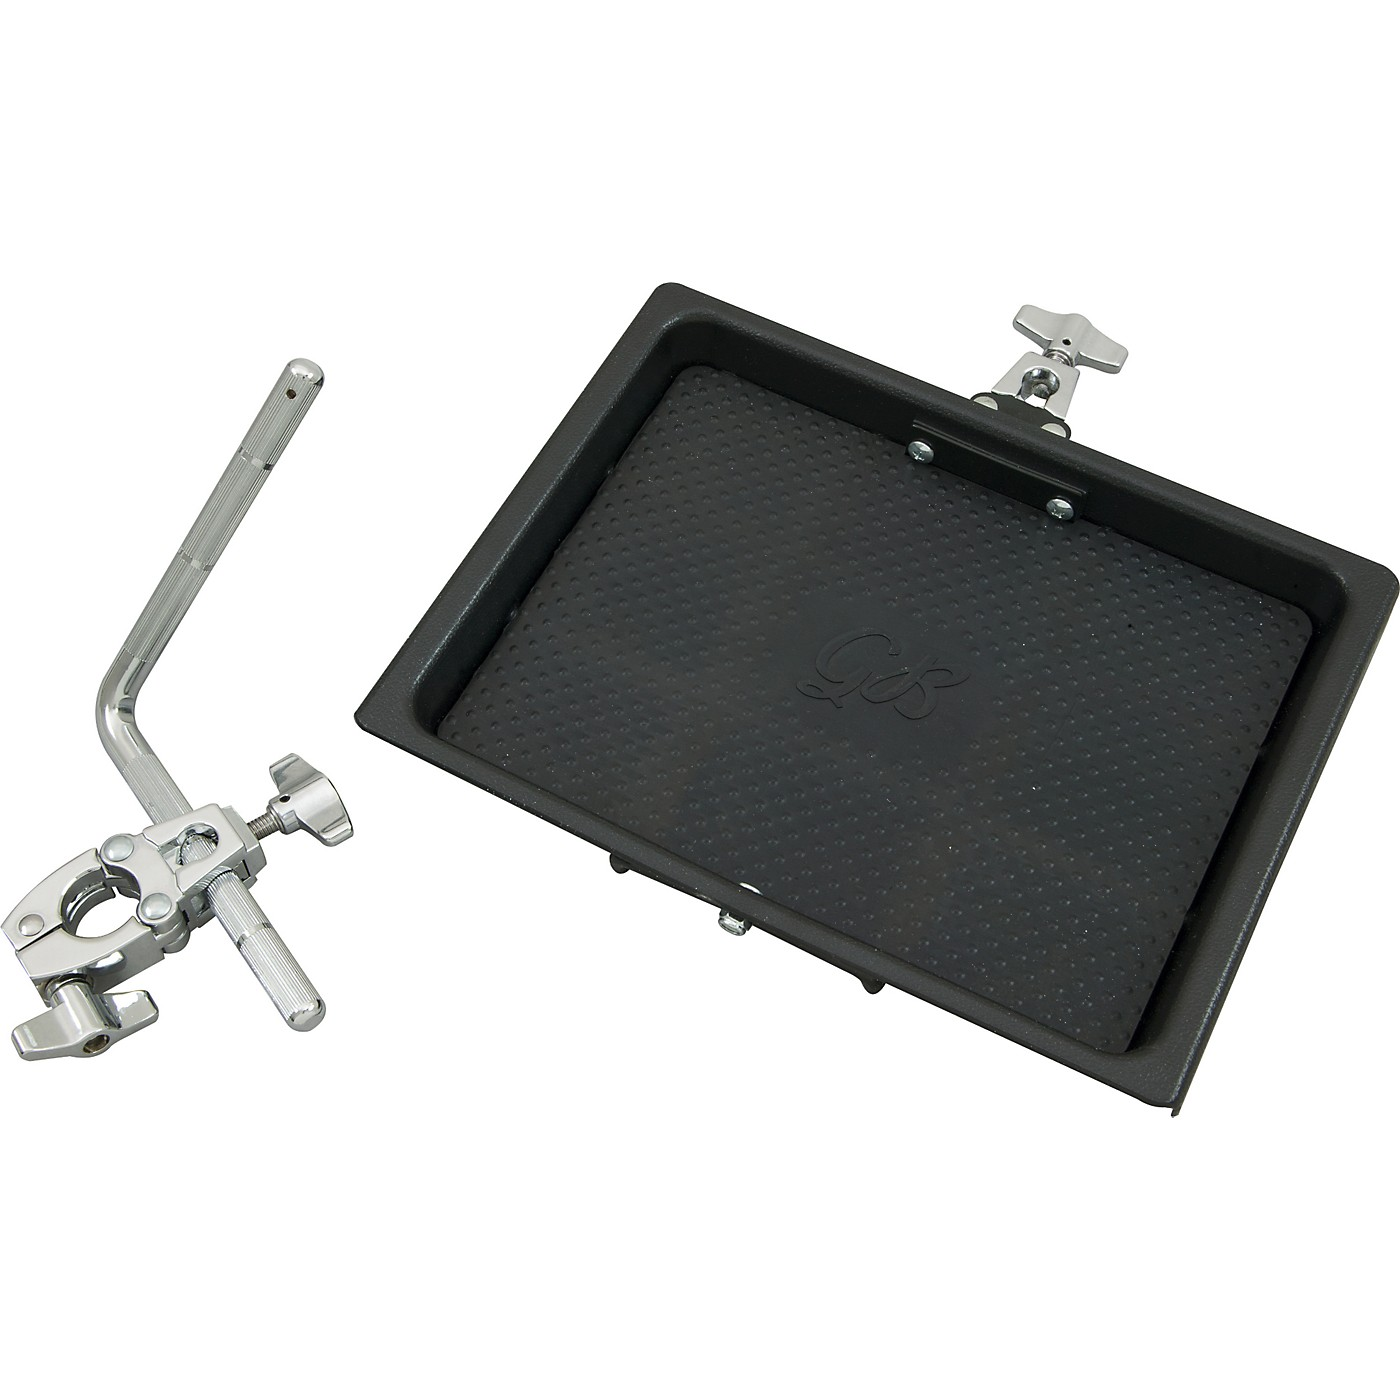 Gon Bops Percussion Tray with Clamp thumbnail